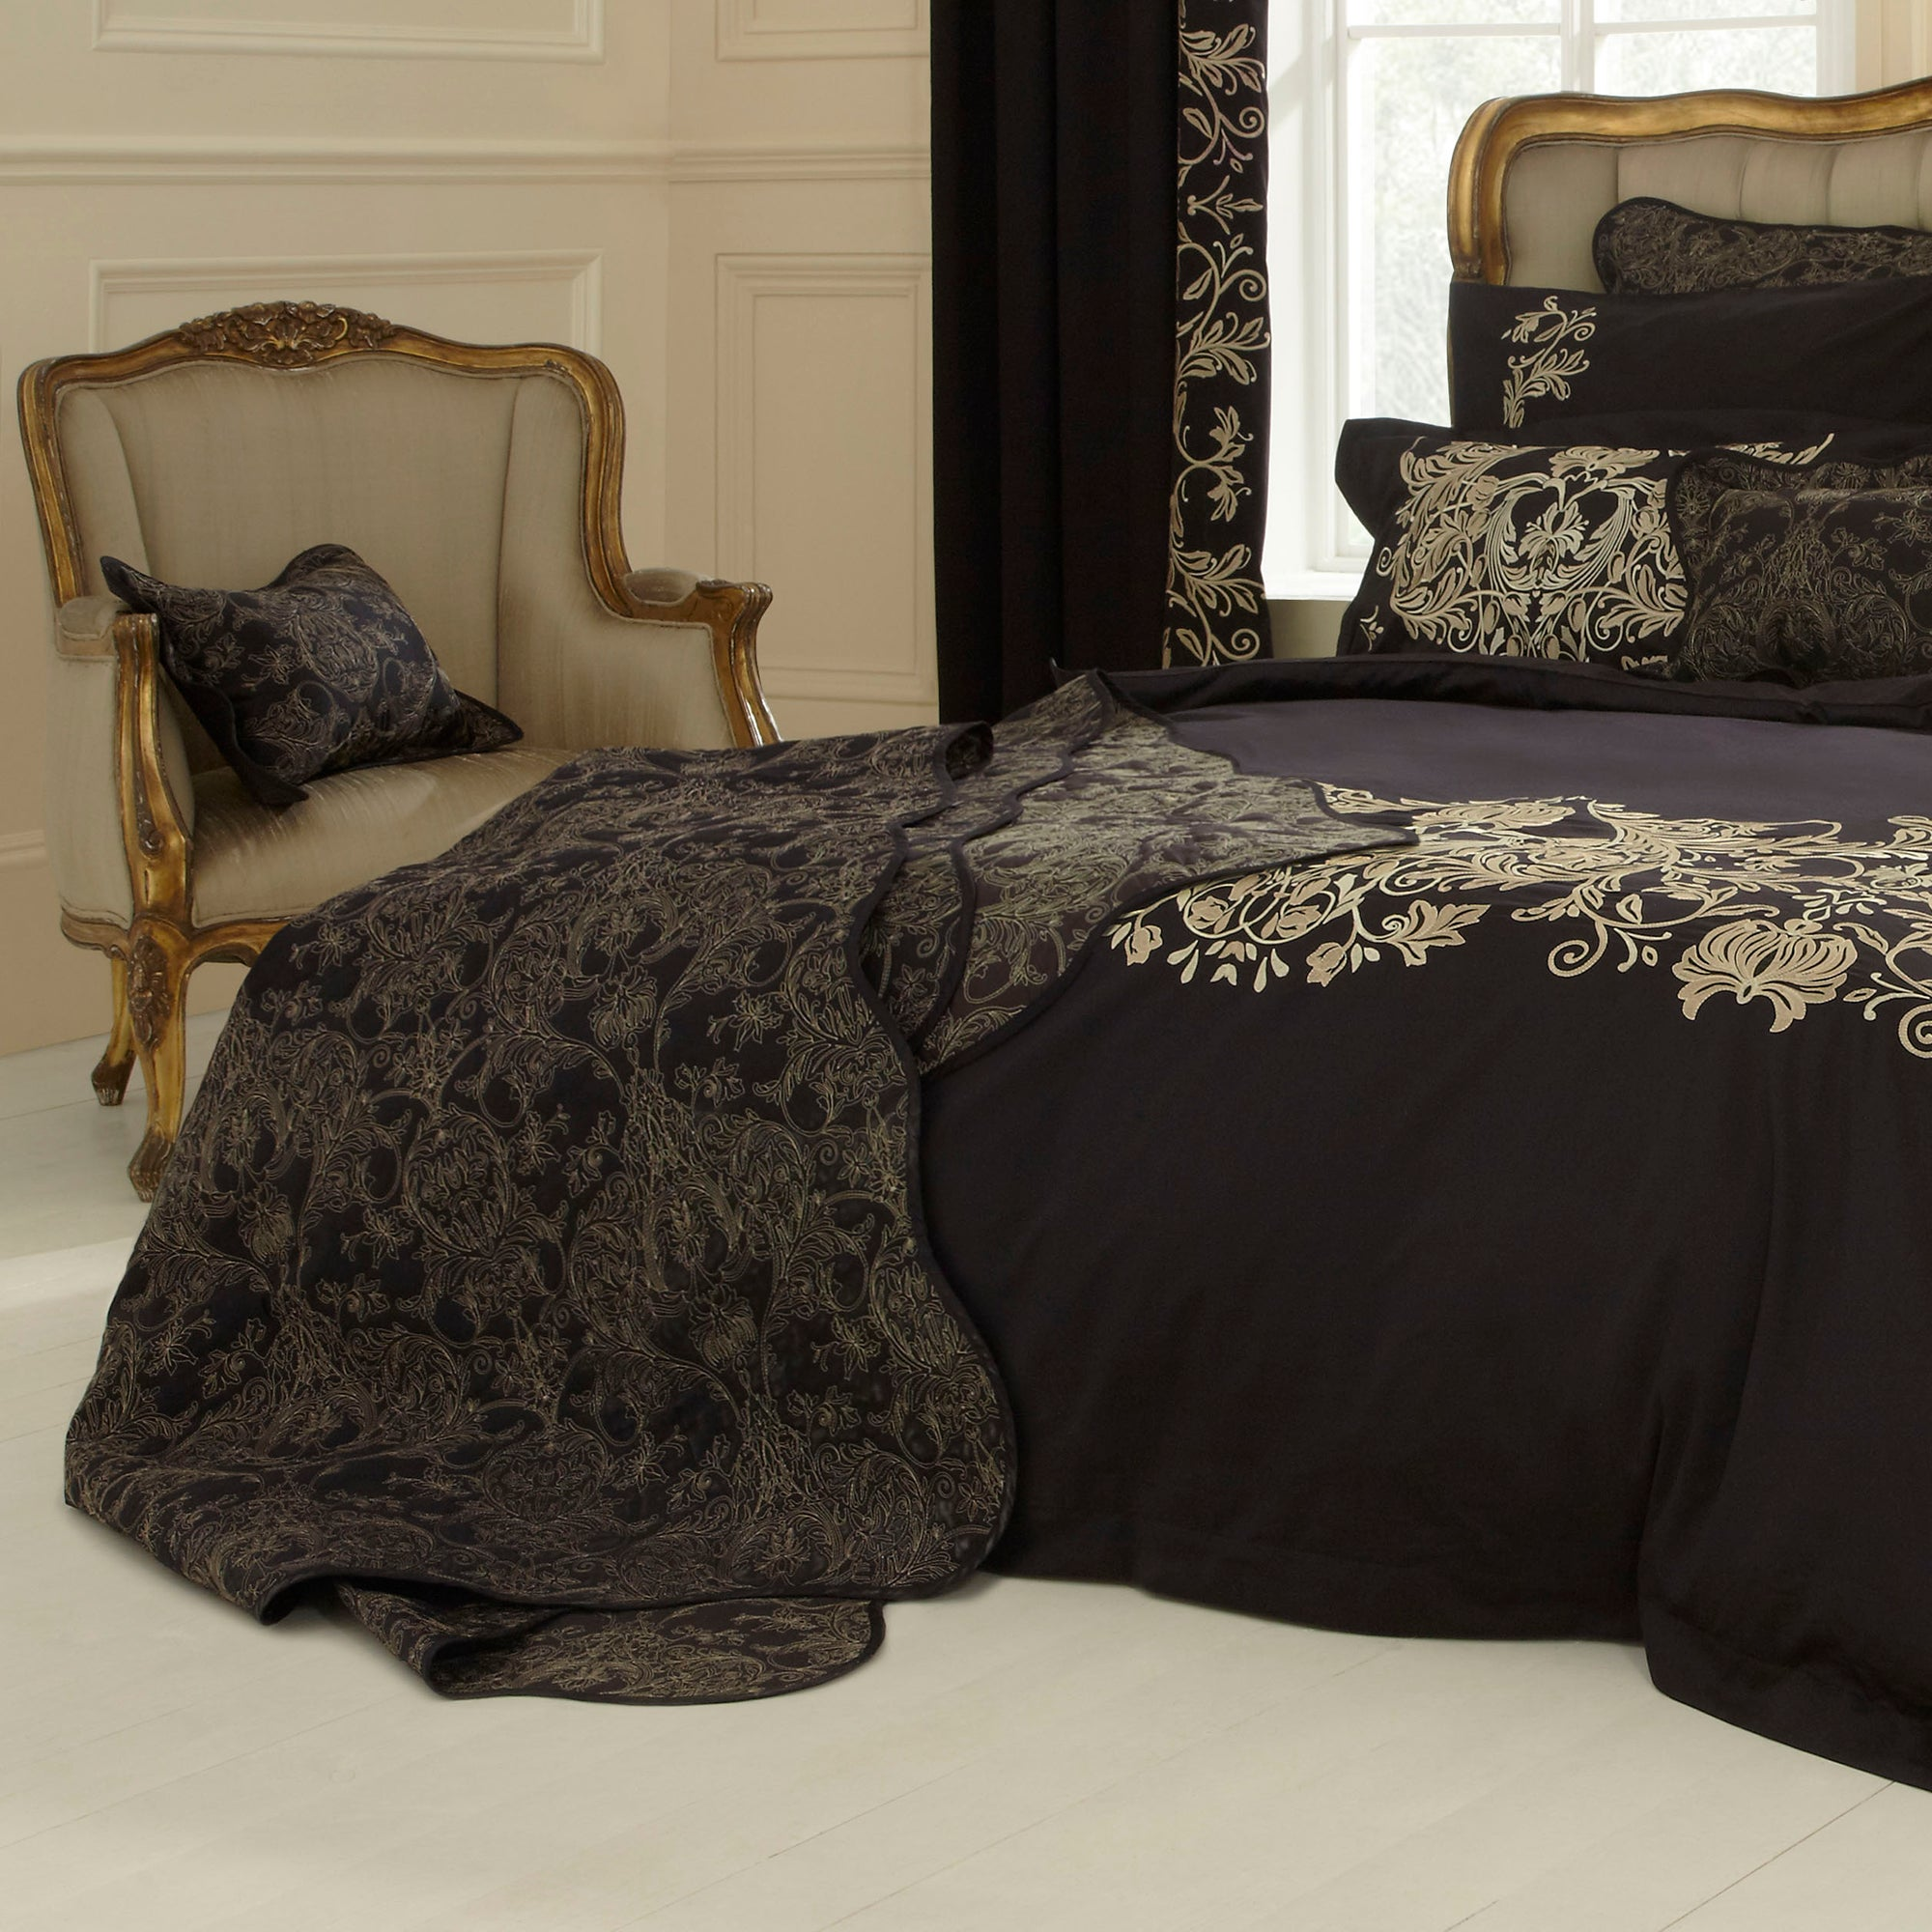 Dorma Black Mayfair Bedlinen Collection